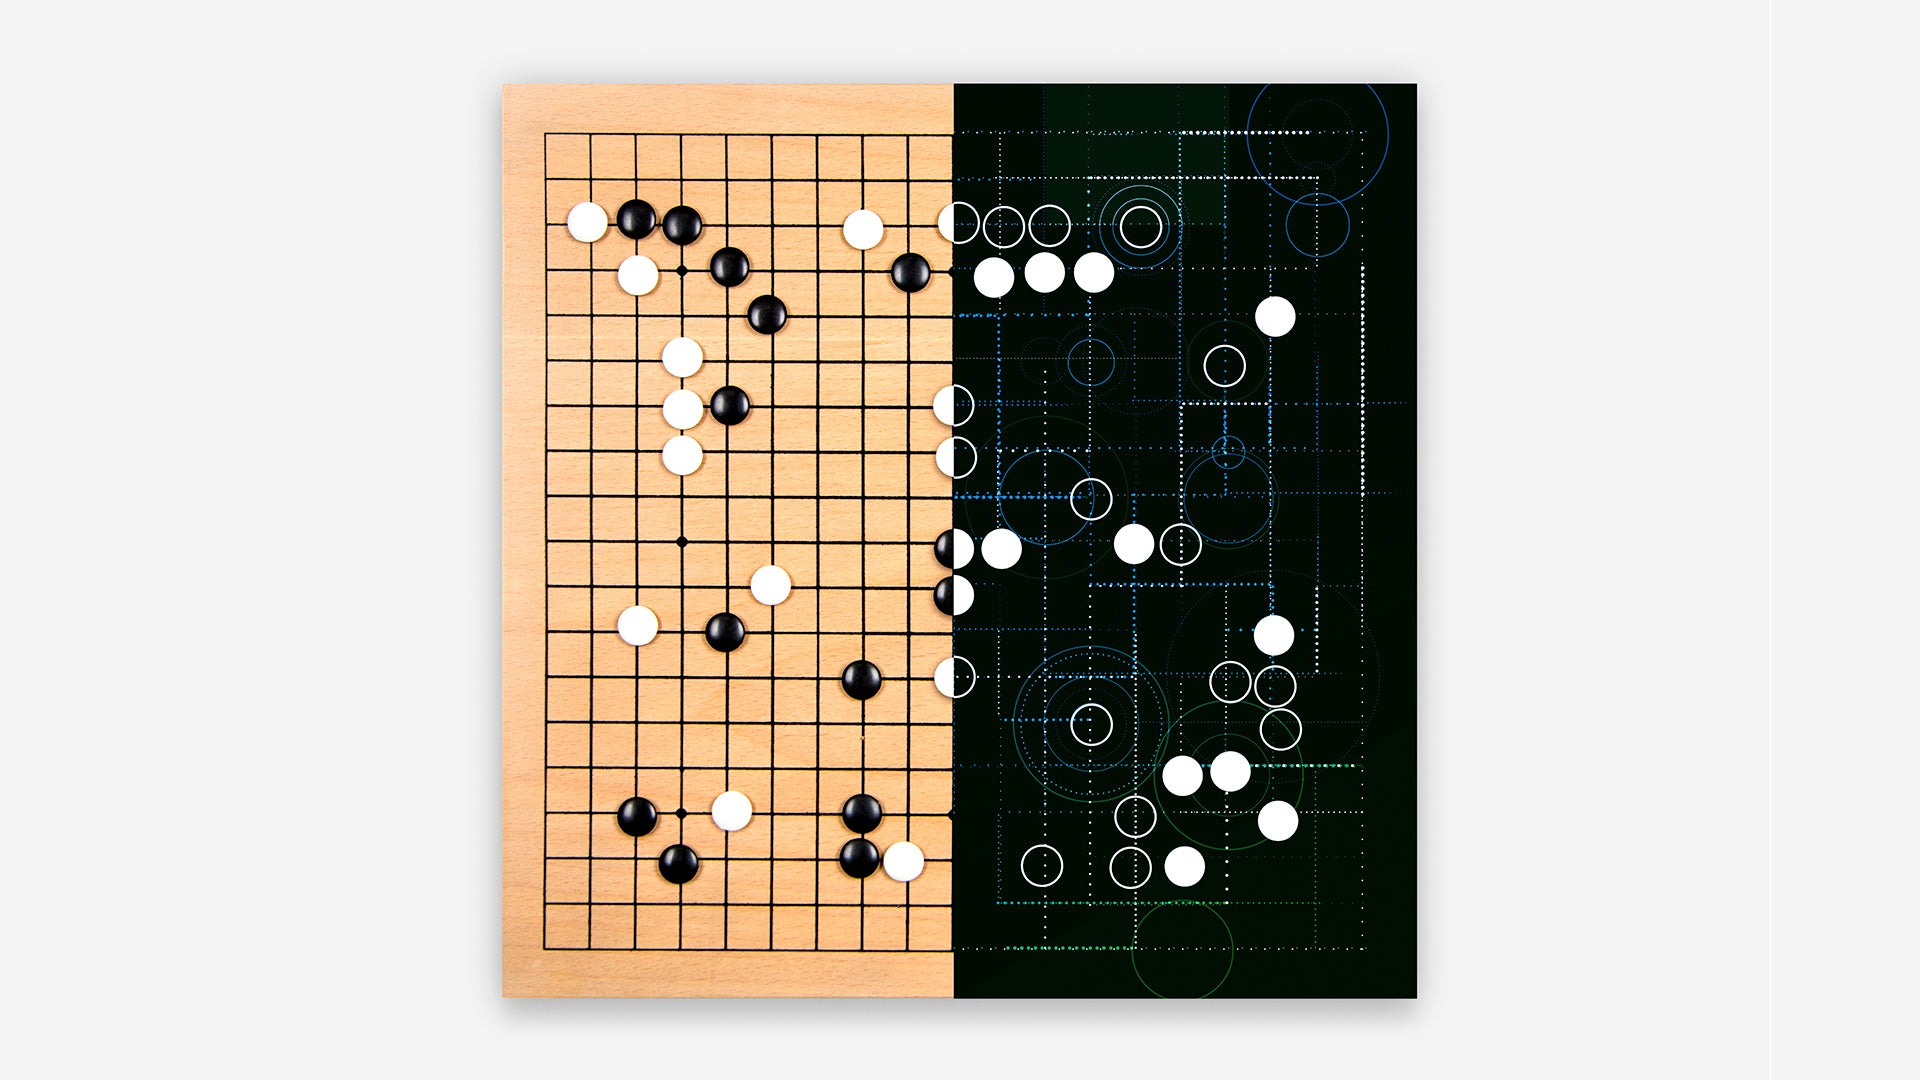 Tonight, Watch Man Battle A.I. In An Ancient Chinese Board Game